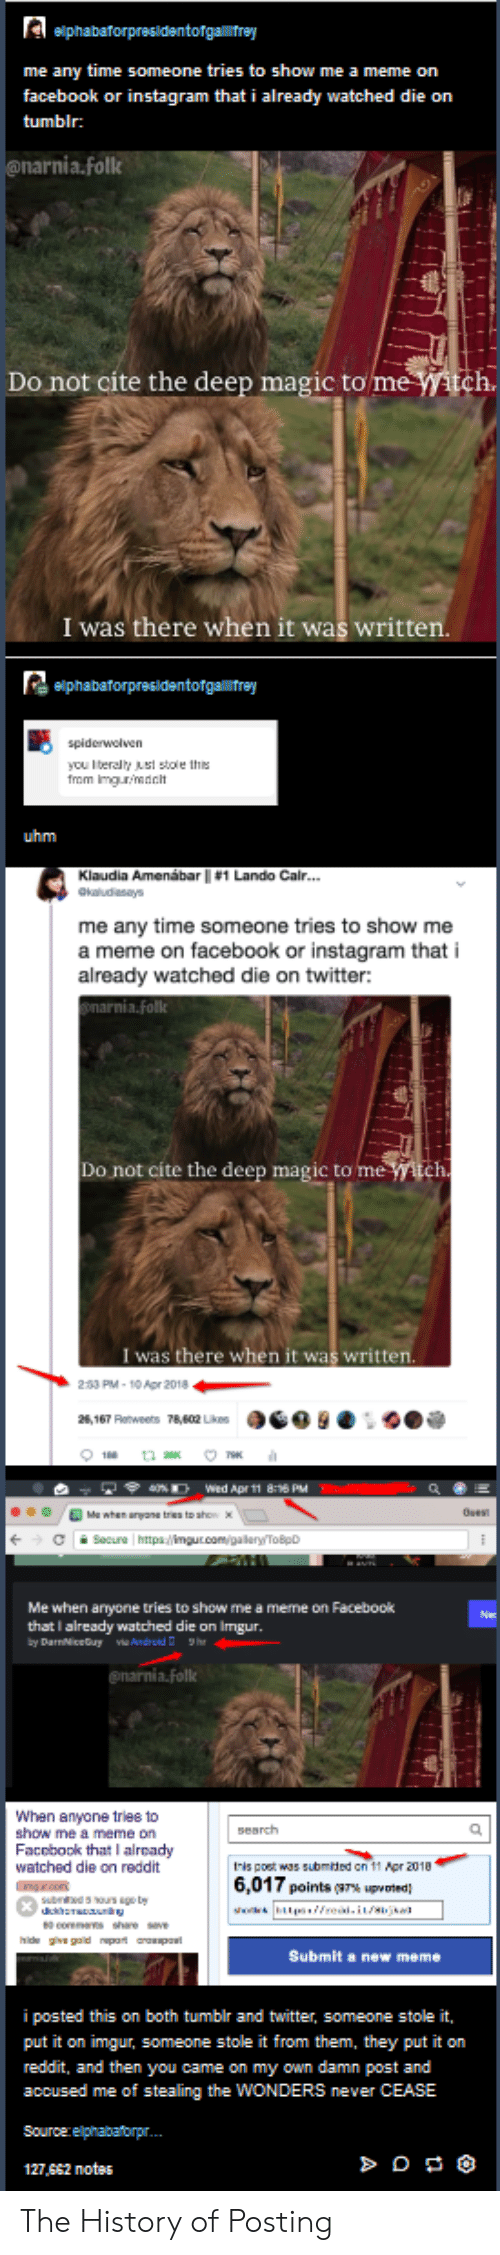 Facebook, Instagram, and Meme: me any time someone tries to show me a meme on  facebook or instagram that i already watched die on  tumblr:  nia.fol  Do not cite the deep magic to  me  h.  I was there when it was written  you lteraly sl stole ths  uhm  me any time someone tries to show me  a meme on facebook or instagram that i  already watched die on twitter:  Do not cite the deep magic to me  I was there when it was written  233 PM-1o Apr 2018  a  Wed Apr 11 8:16 PM  Me when arryone tries to show me a meme on Facebook  that I already watched die on Imgur  Whan anyone triee to  show me a meme on  Facobook thatI alrcady  watched die on reddit  this post was submied on 11 Ppr 2010  6,017 points (g7% up orted  Submit a new meme  i posted this on both tumbir and twitter, someone stole it,  put it on imgur, someone stole it from them, they put it on  reddit, and then you came on my own damn post and  accused me of stealing the WONDERS never CEASE  Sourcerelphabatorpr.  127,SS2 notes The History of Posting